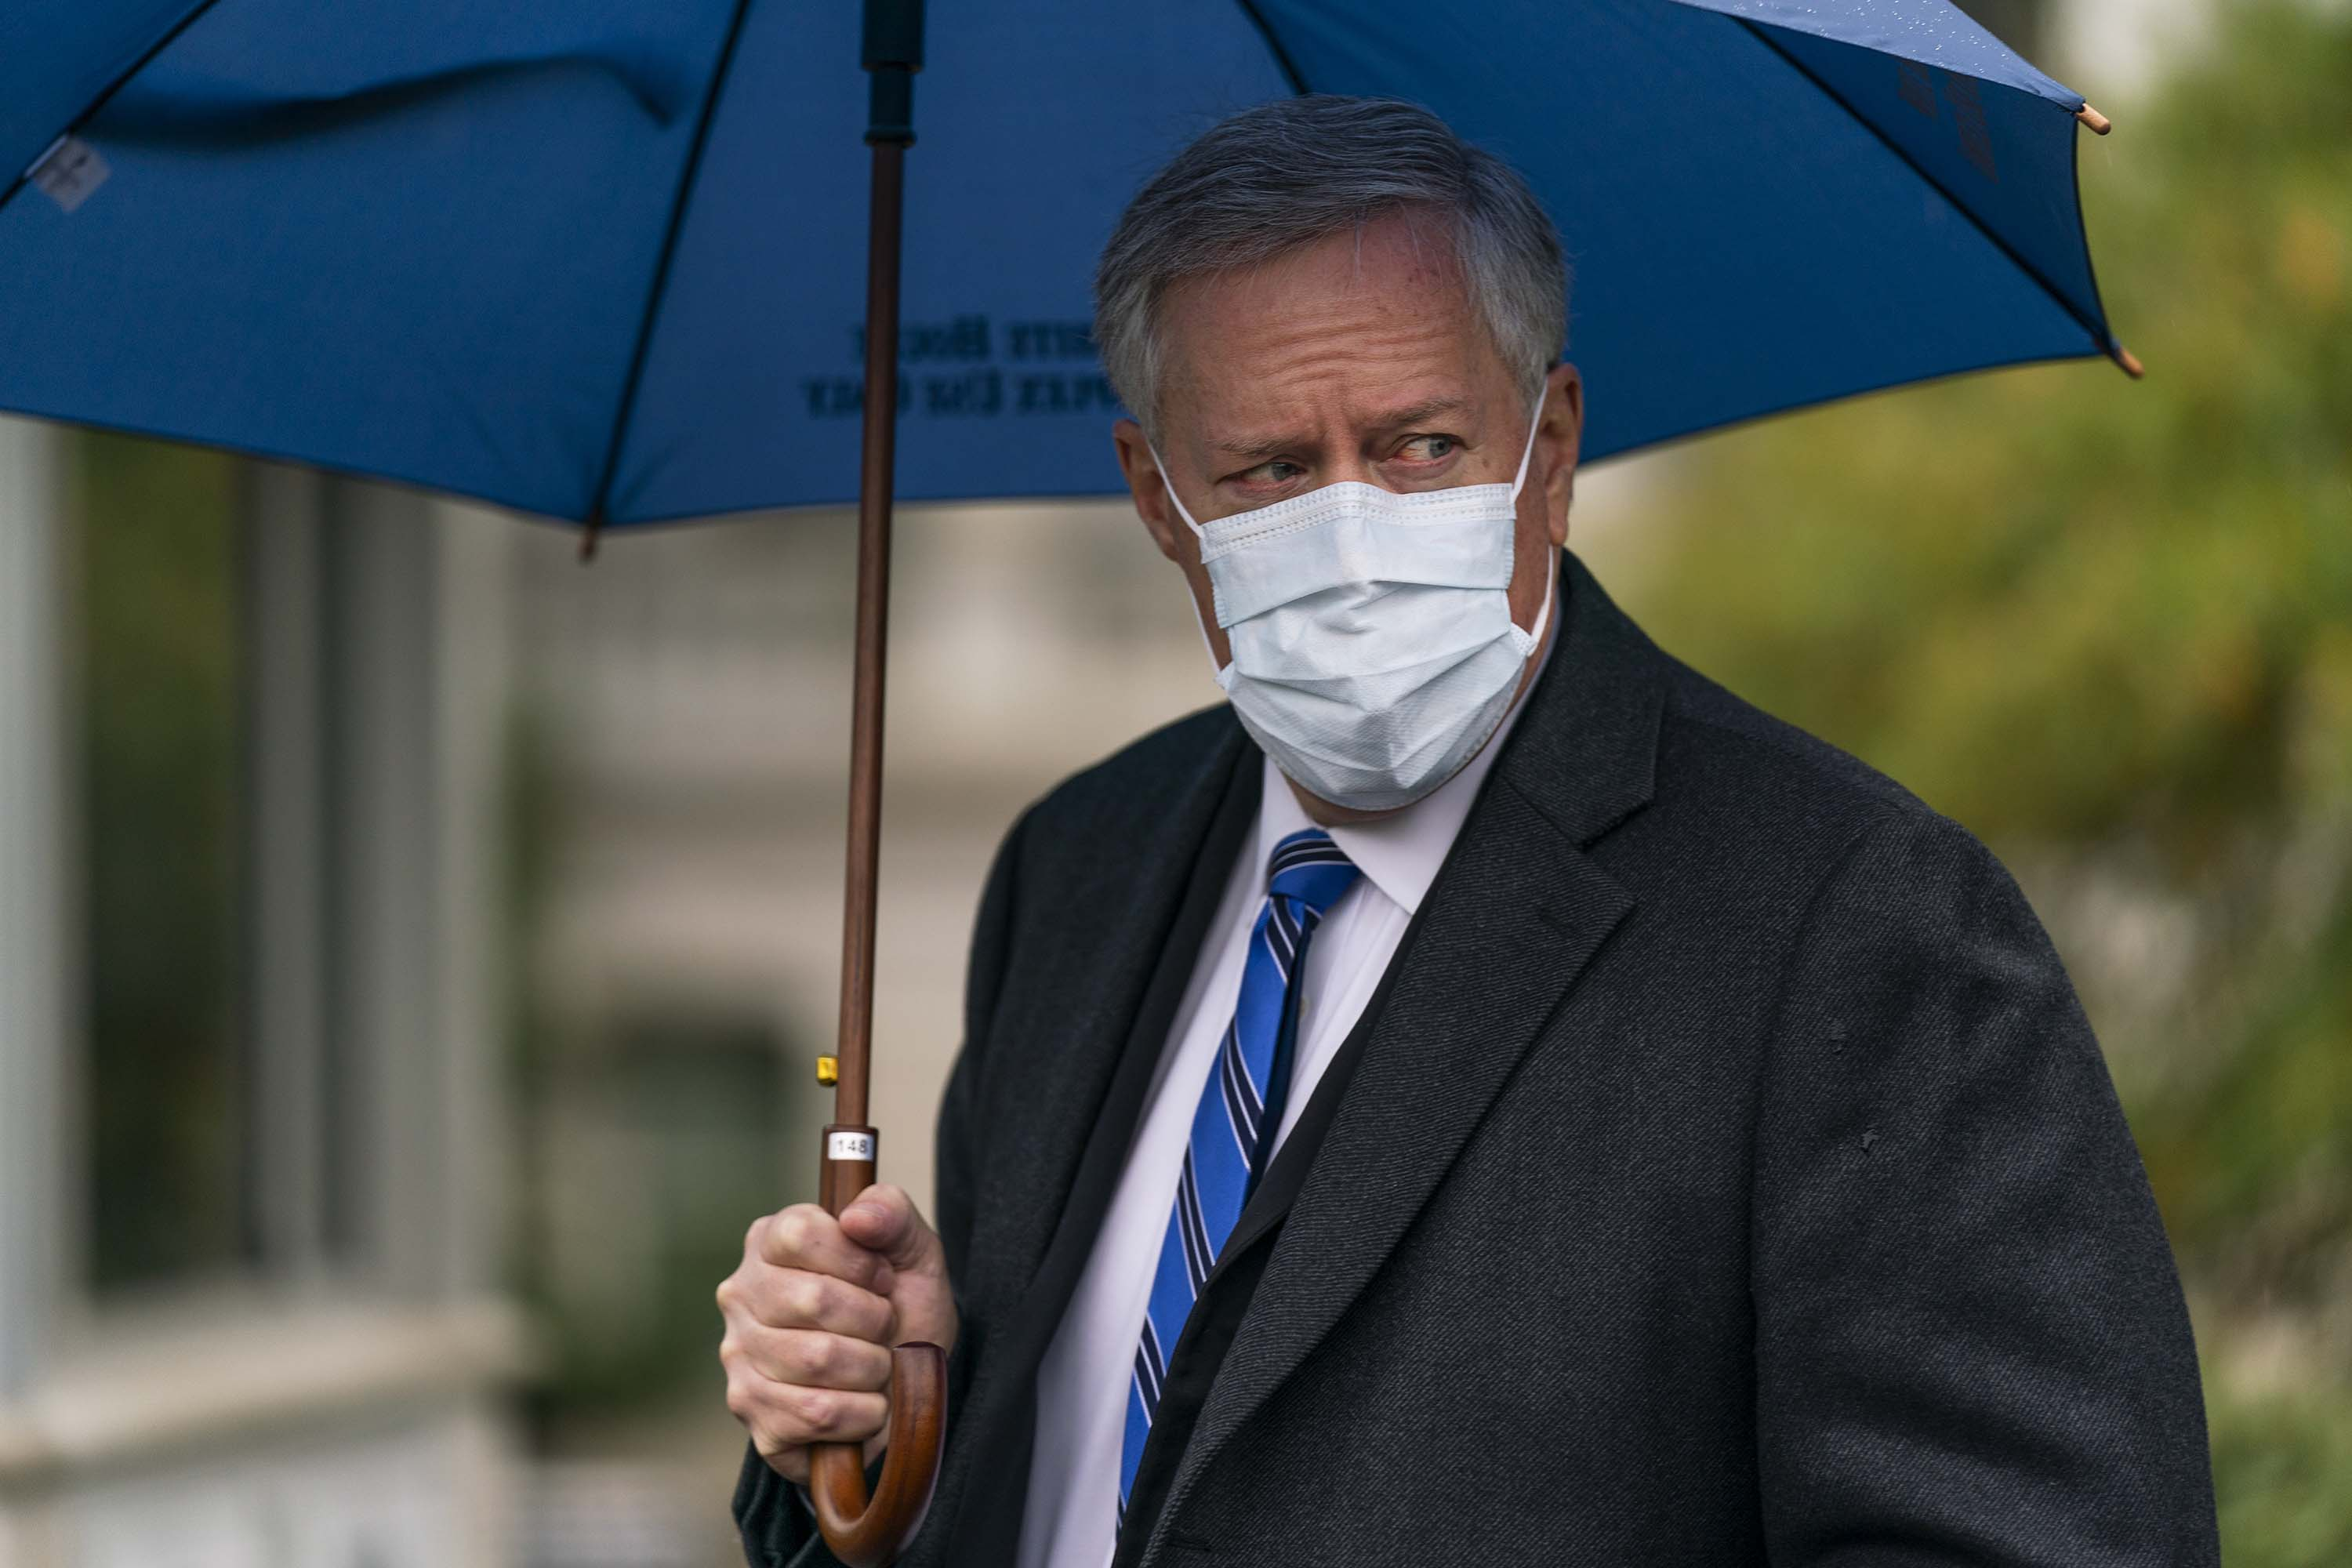 White House chief of staff Mark Meadows responds to reporters questions outside the White House on Sunday, October 25, in Washington.